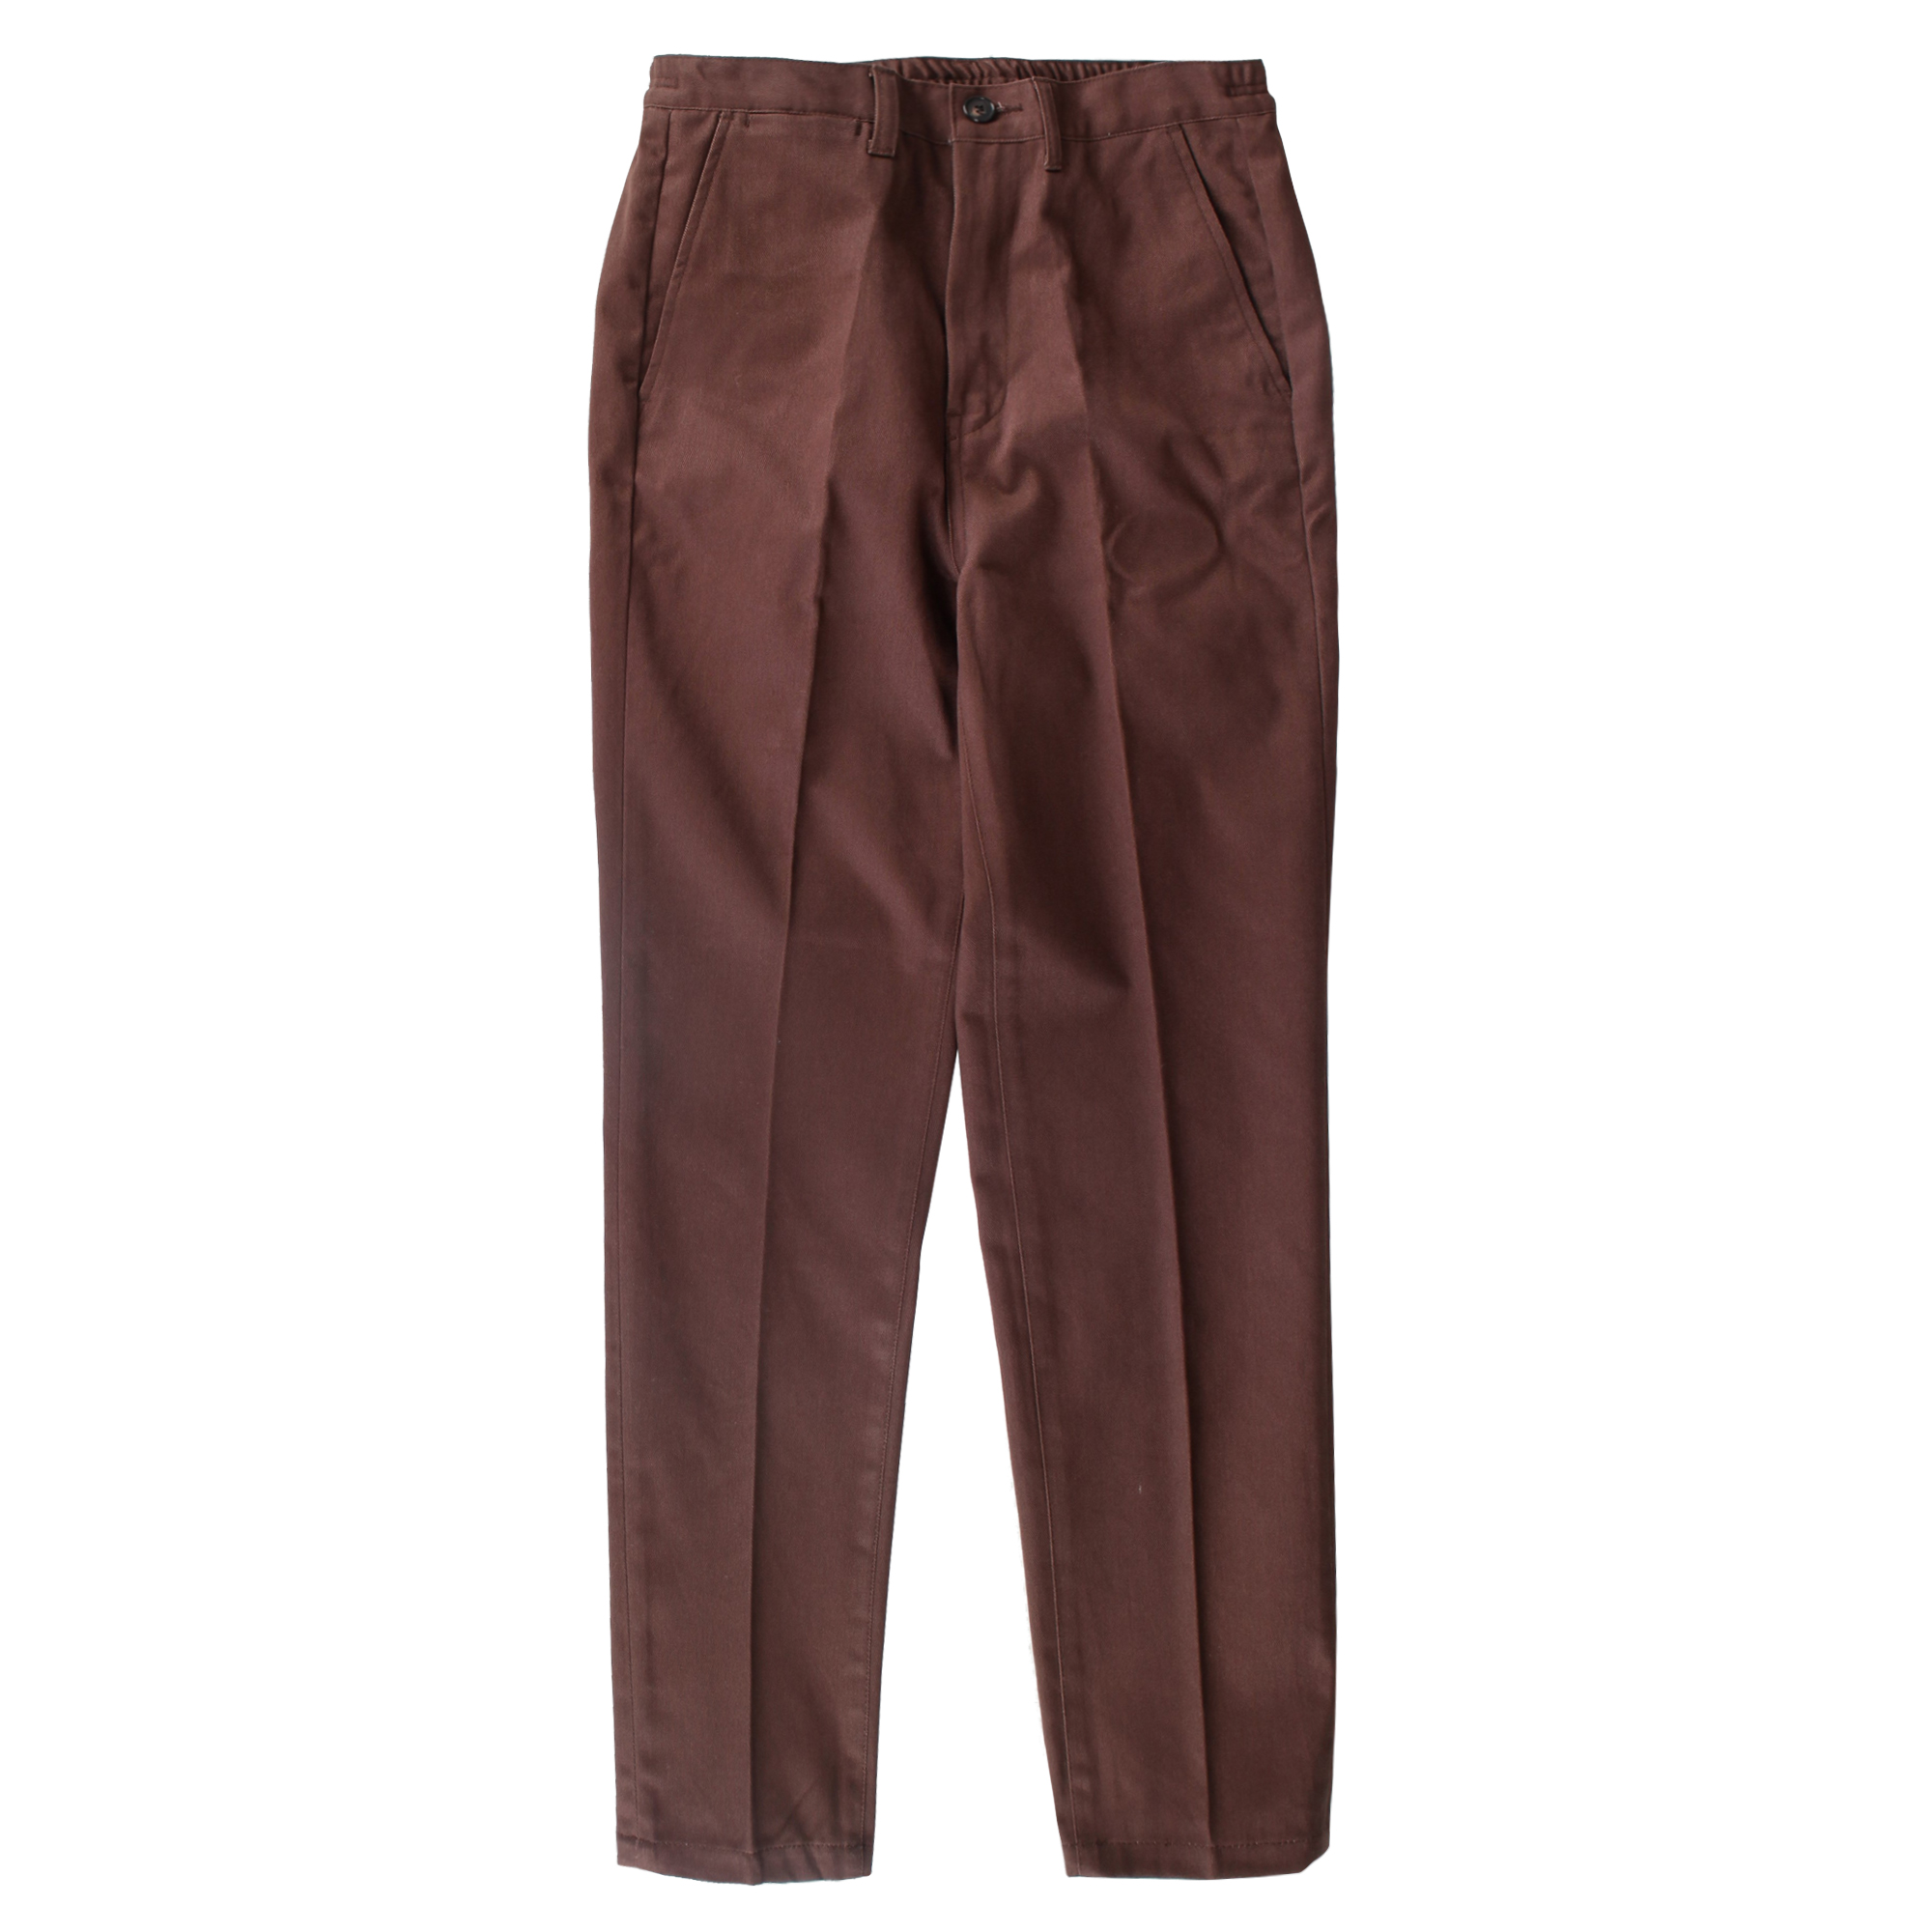 Fineday Clothing Half band trouser_Brown